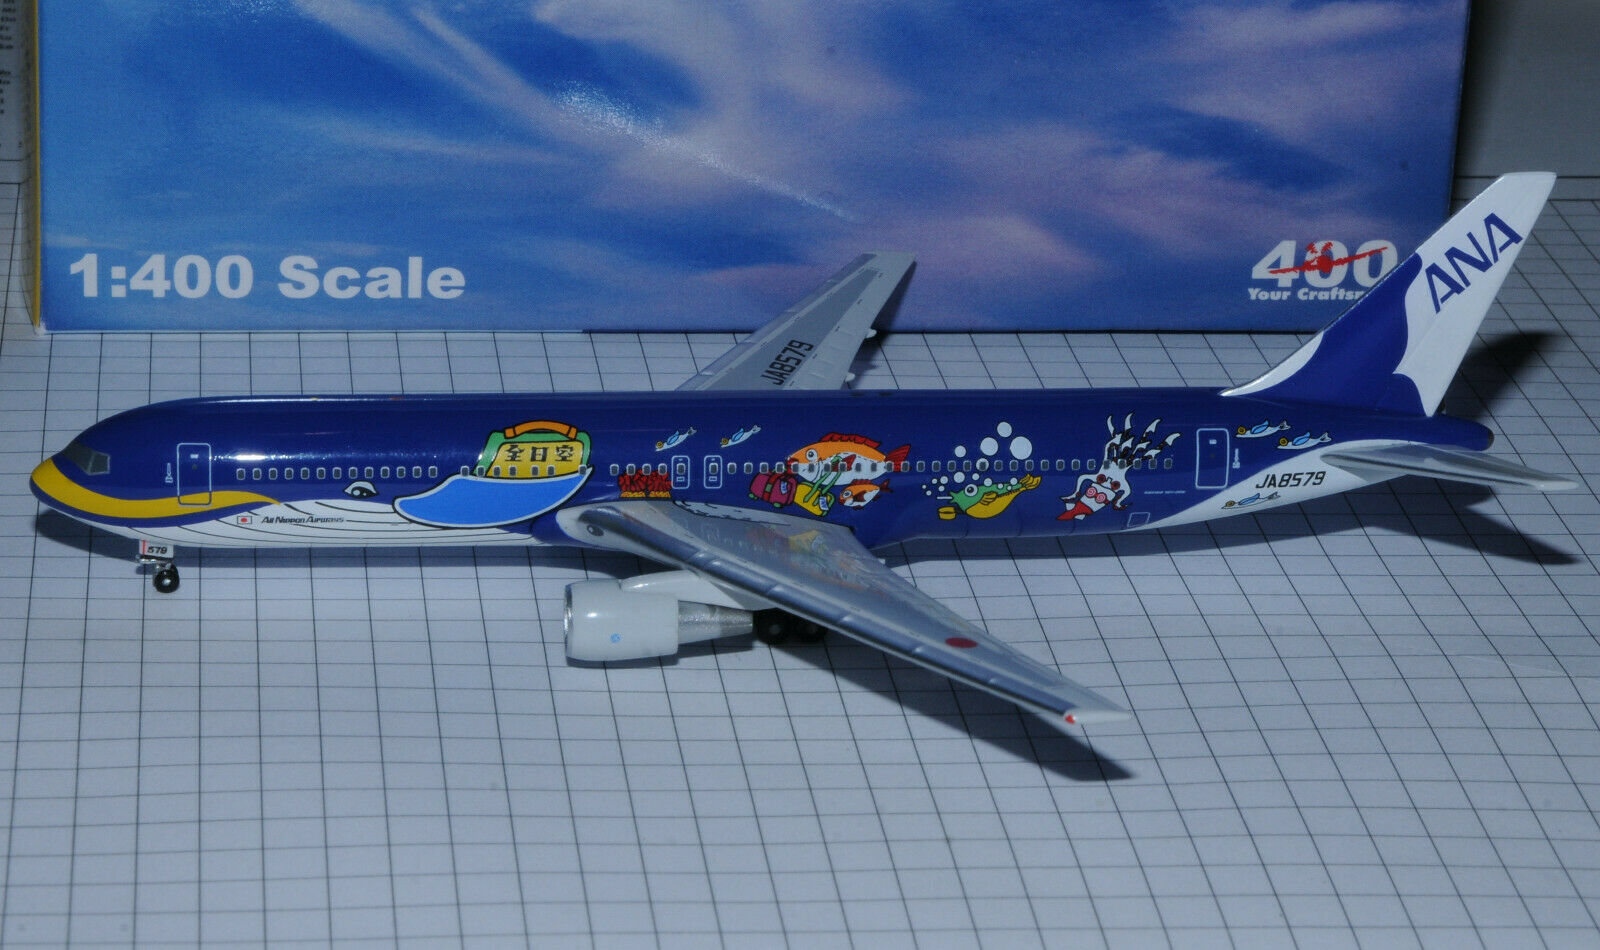 Craftsman 400 ANA All Nippon boeing b767-300  The Whale